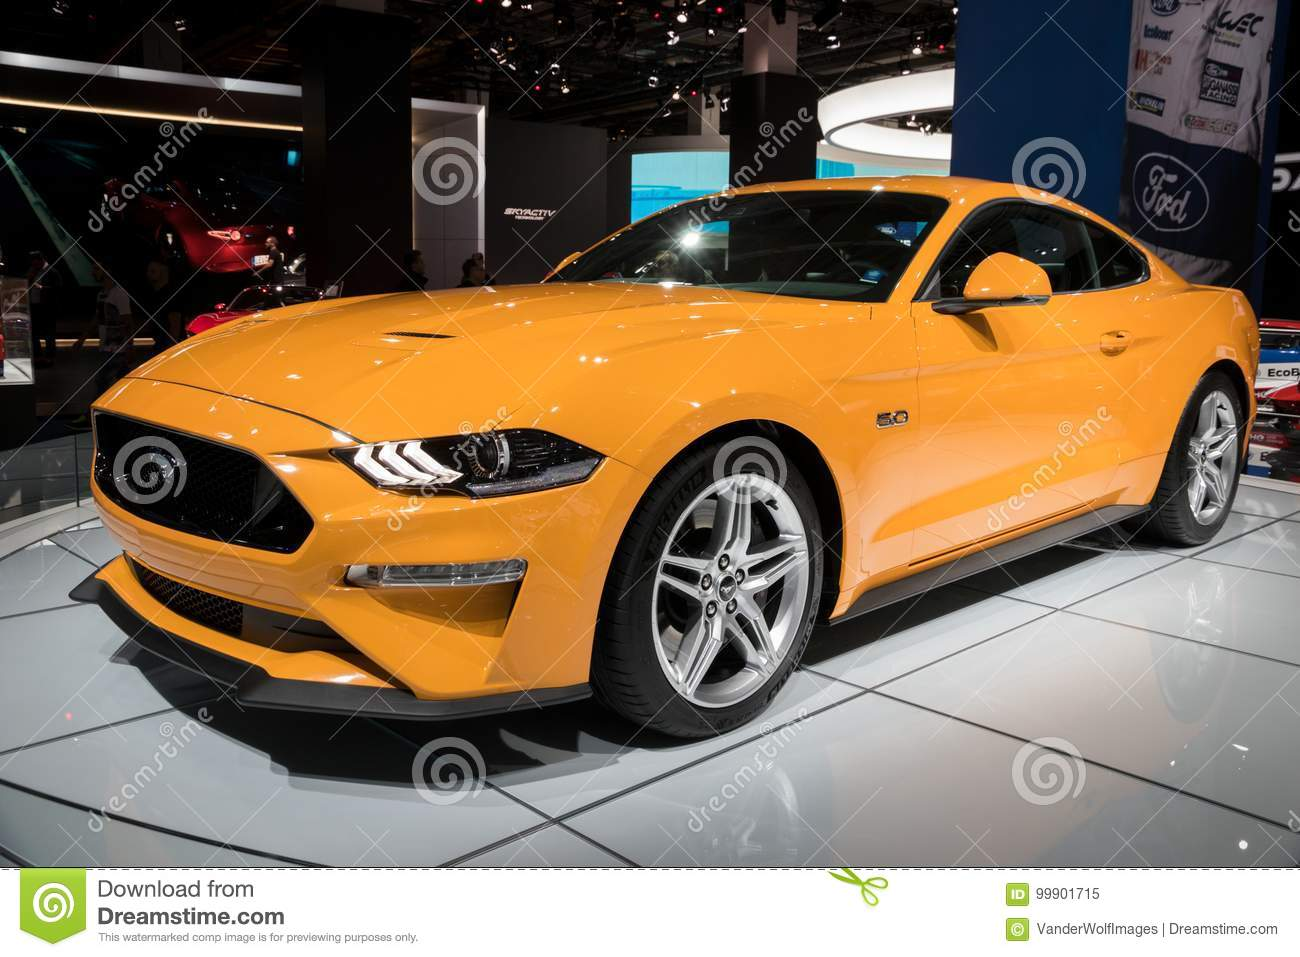 New Yellow Ford Mustang GT Sports Car Editorial Image Image - Mustangs unlimited car show 2018